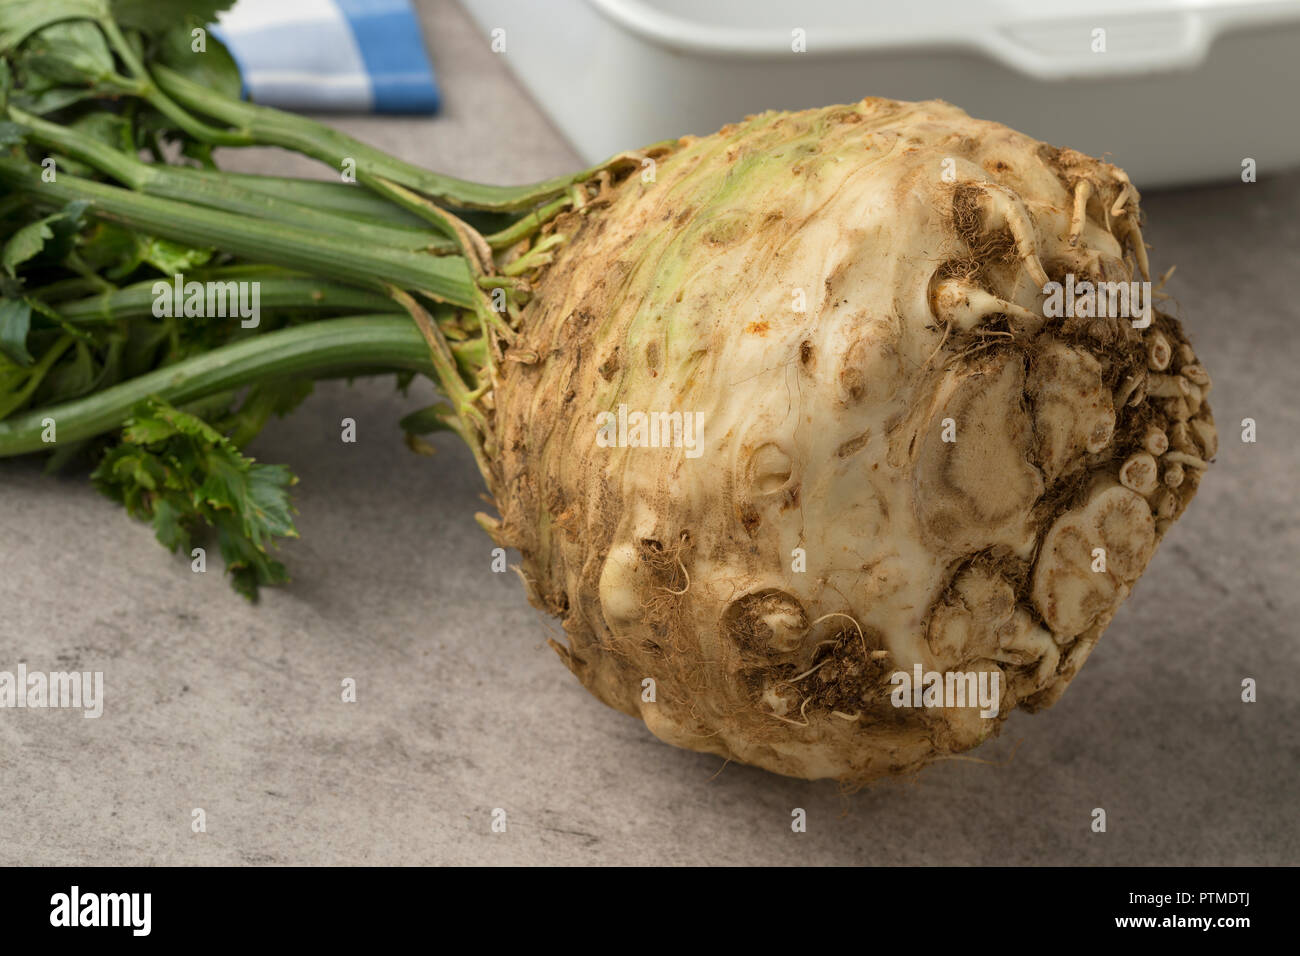 Fresh raw organic celery root and leaves closeup Stock Photo